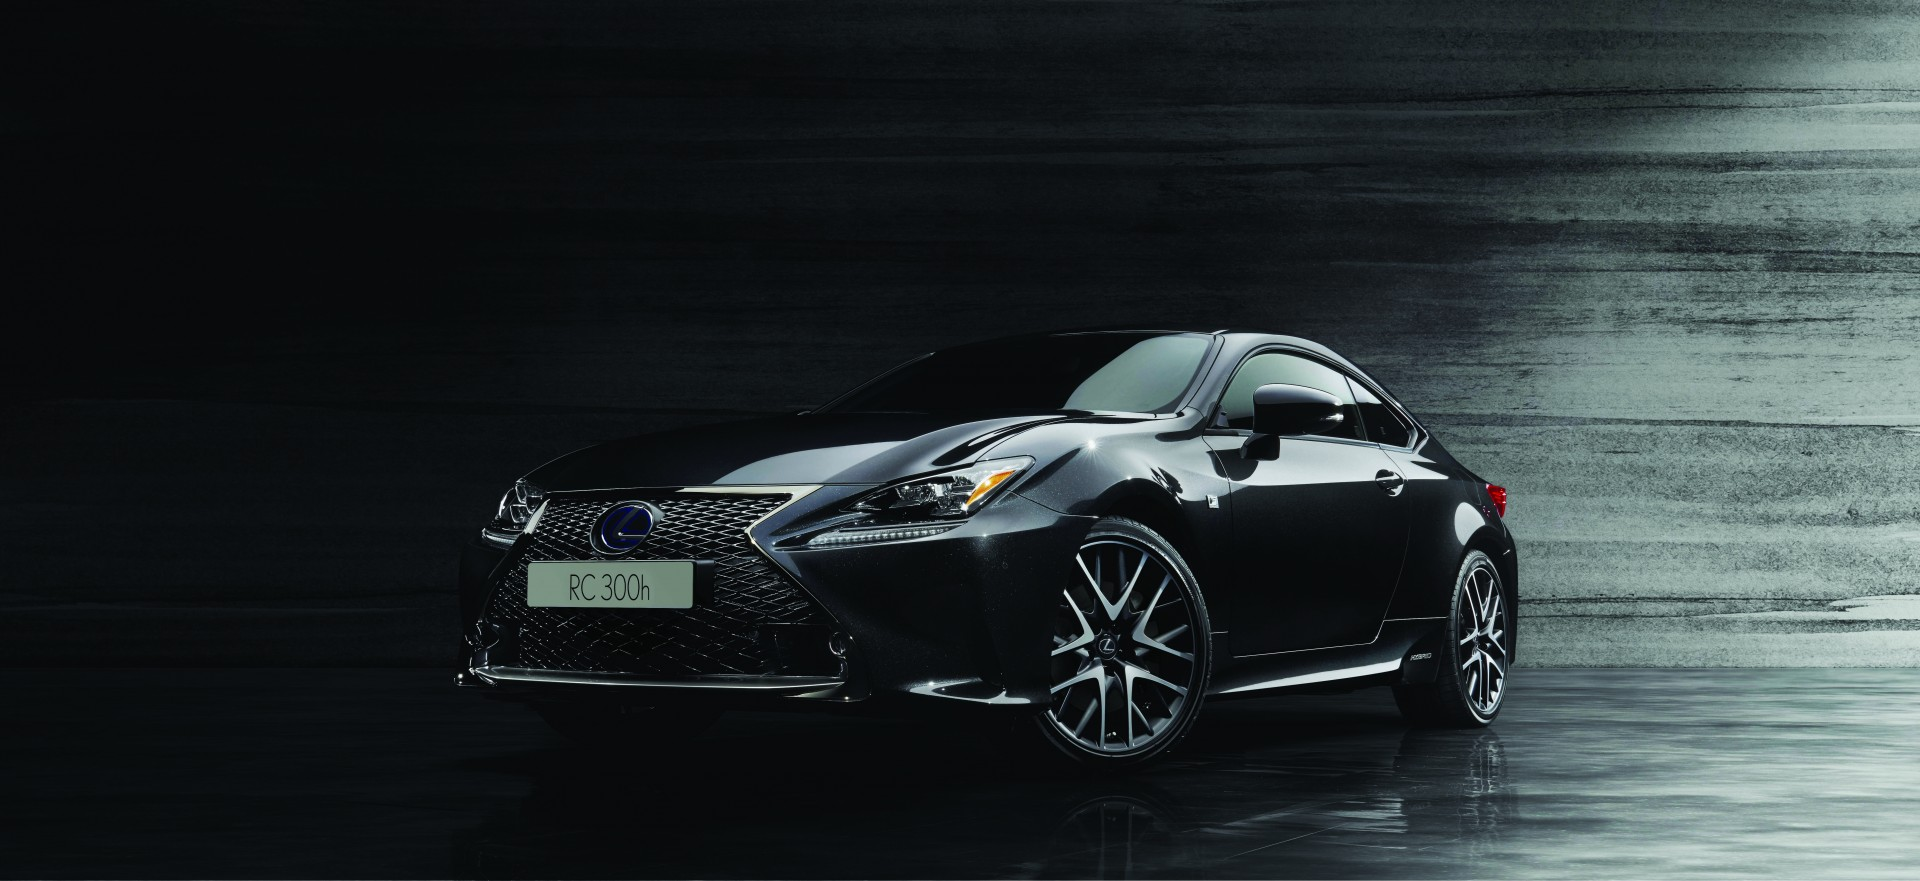 new lexus rc f sport black edition all black theme inspired by traditional japanese sumi ink. Black Bedroom Furniture Sets. Home Design Ideas